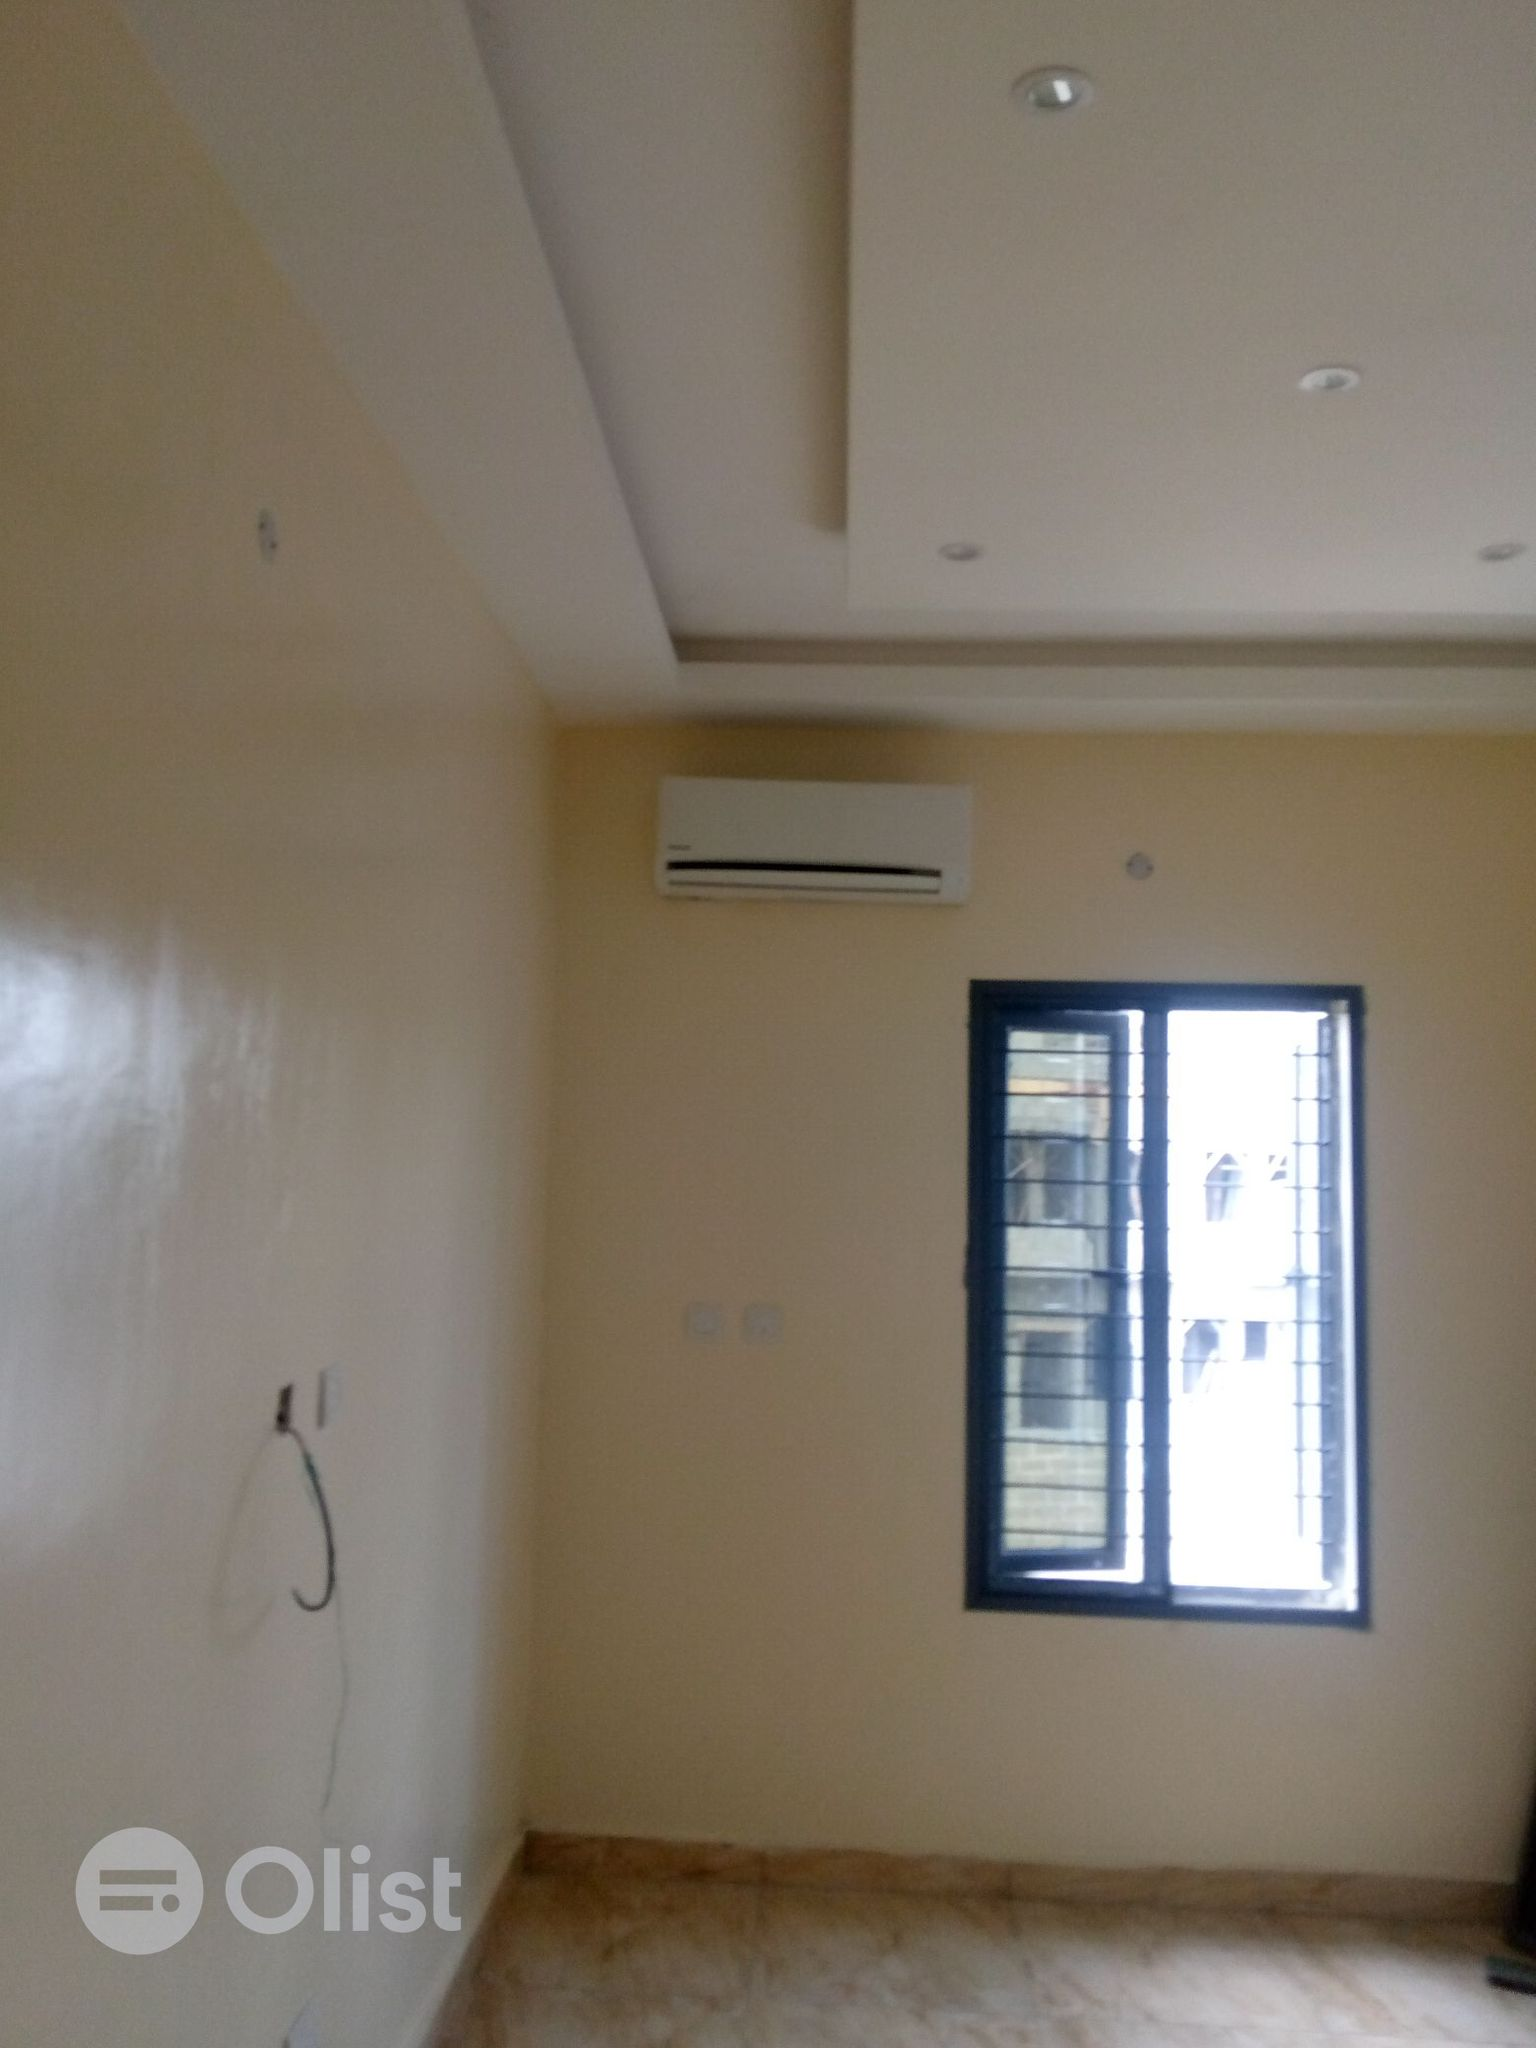 2 BEDROOM SERVICED APARTMENT FOR RENT.